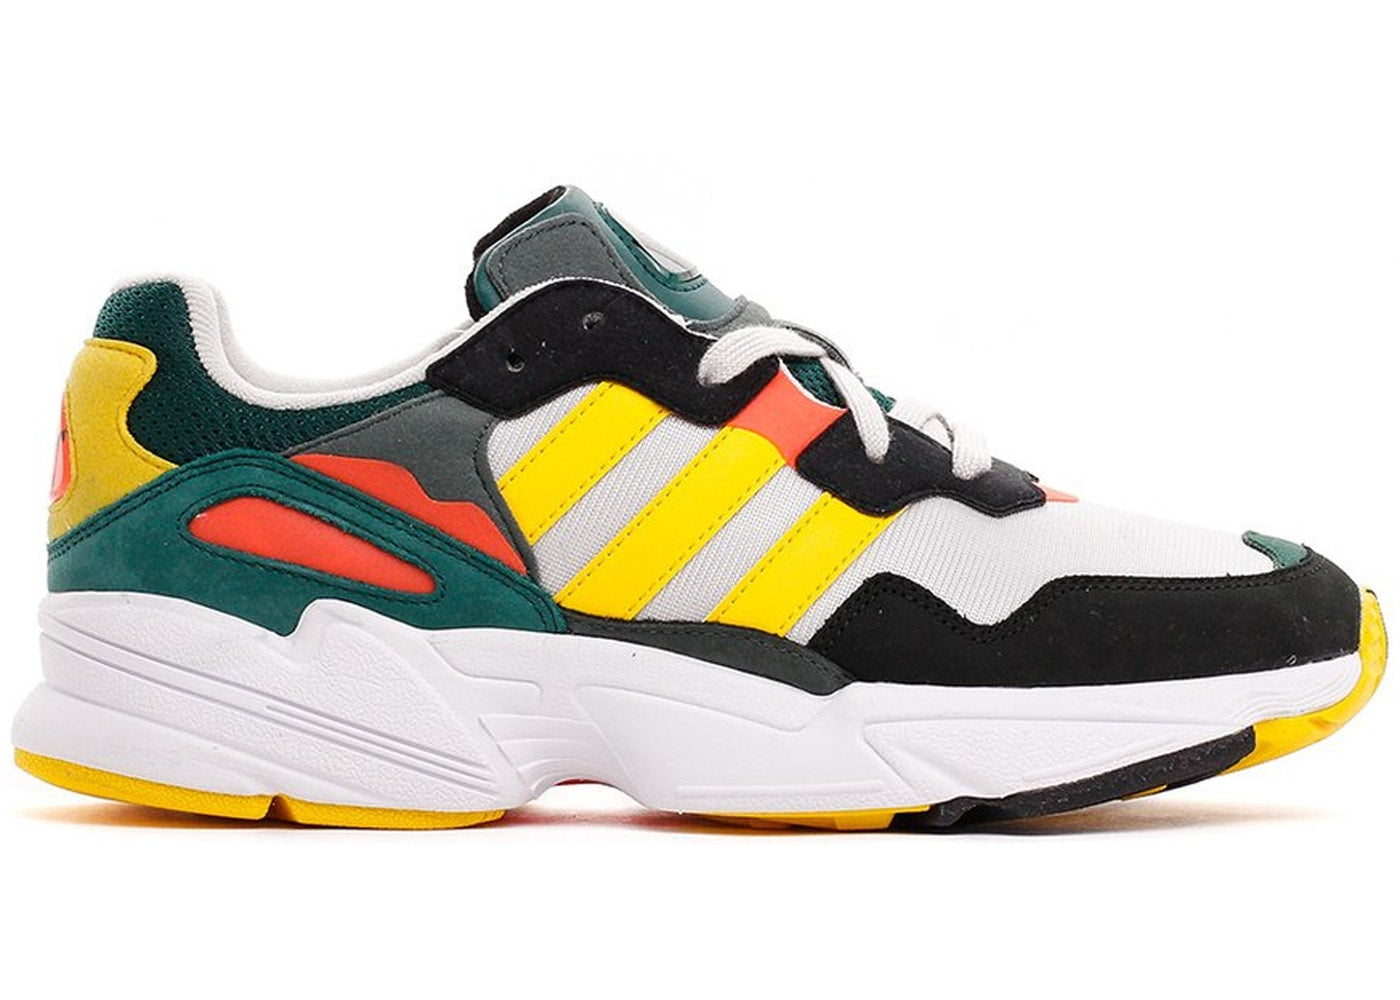 Details about Mens Adidas Yung 96 Green Bold Gold Grey One Solar Red DB2605